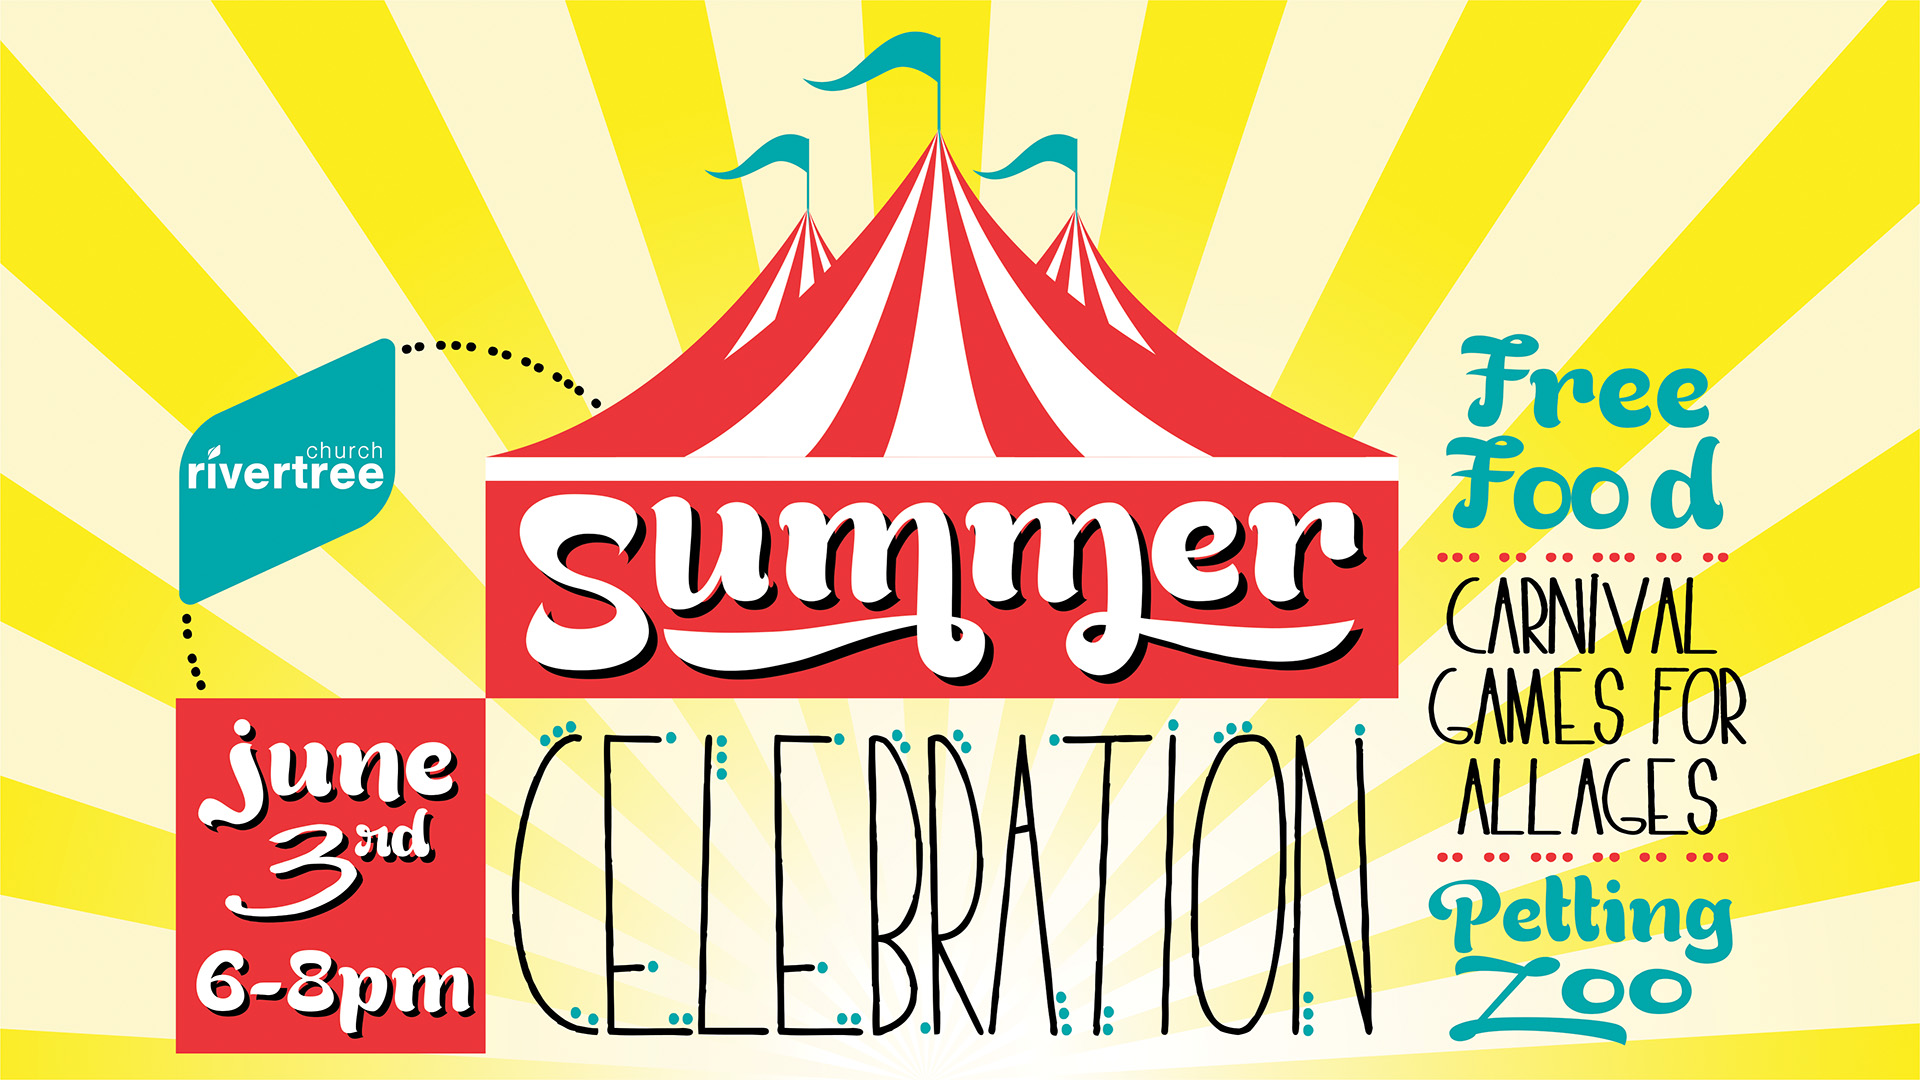 Come kick off summer with us at our Summer Celebration on Friday, June 3rd from 6-8pm.  We will have yummy, free food and fun, carnival games for all ages.  Bring chairs and blankets for your family.  Please sign up in the lobby Sunday if you can help or email Priscilla Ballard at priscilla@myrivertree.org or Kasi Duckett at kasi@myrivertree.org.